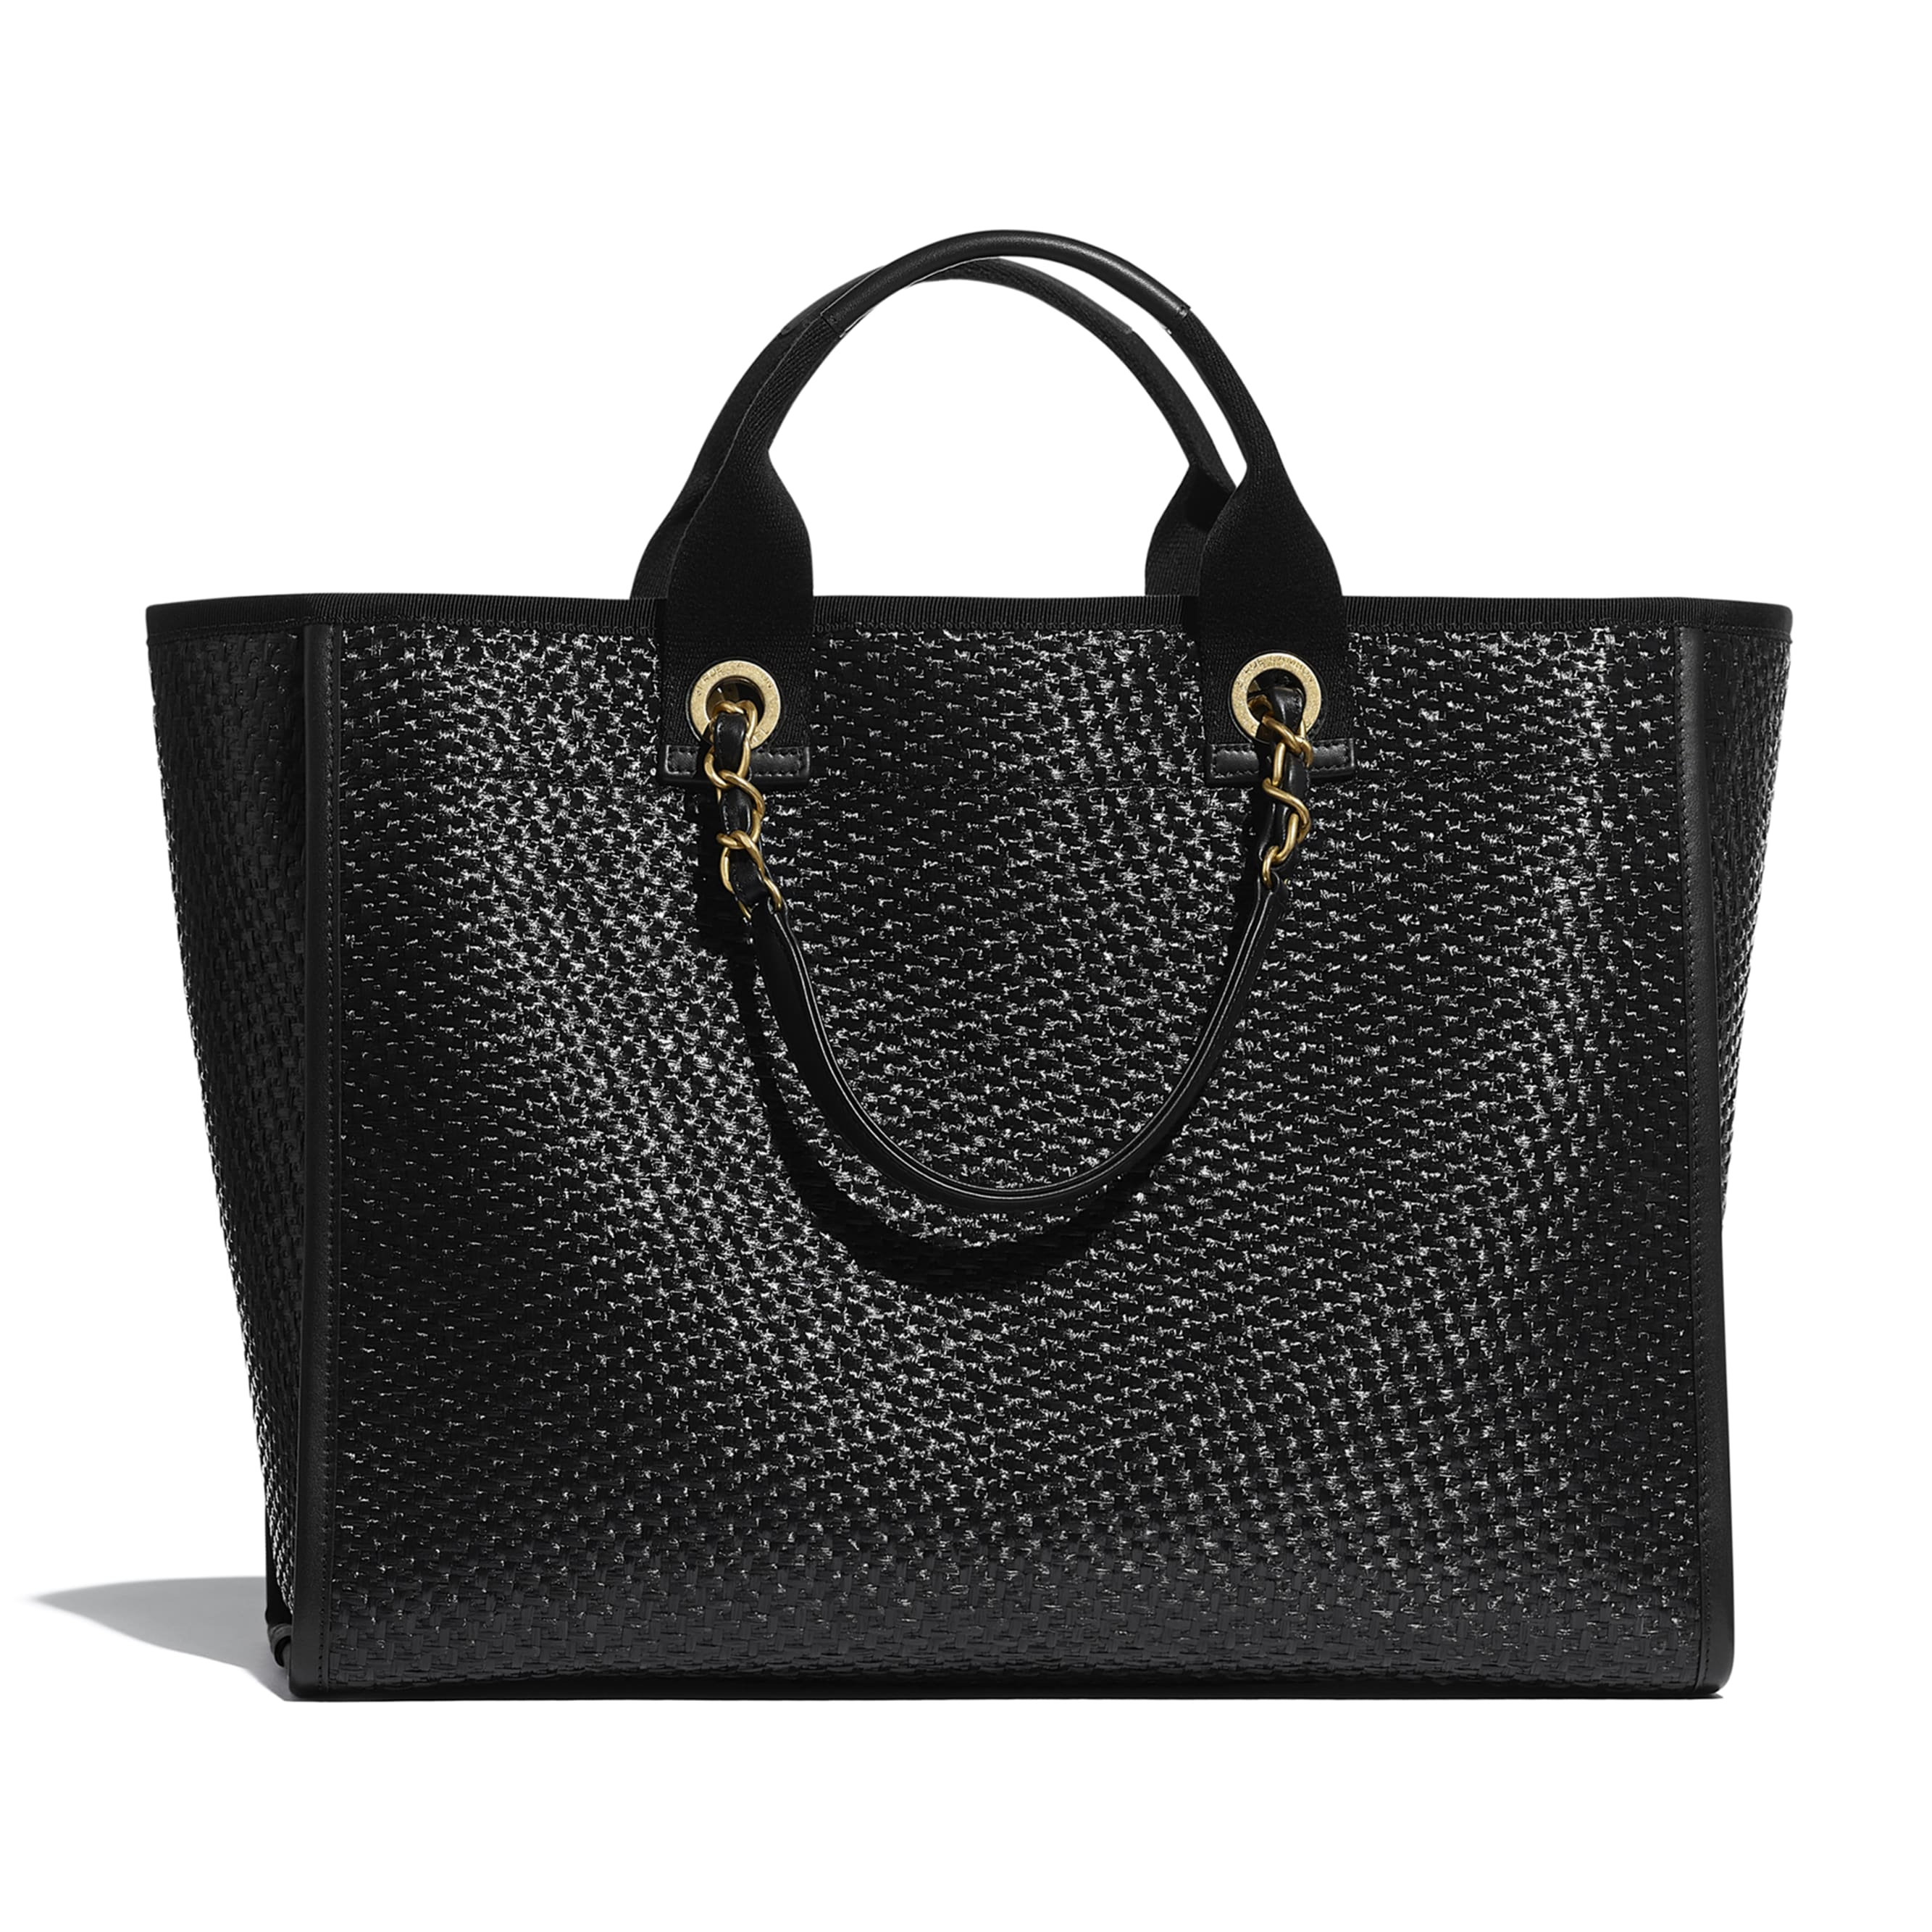 Large Tote - Black - Straw, Calfskin & Gold Metal - CHANEL - Alternative view - see standard sized version